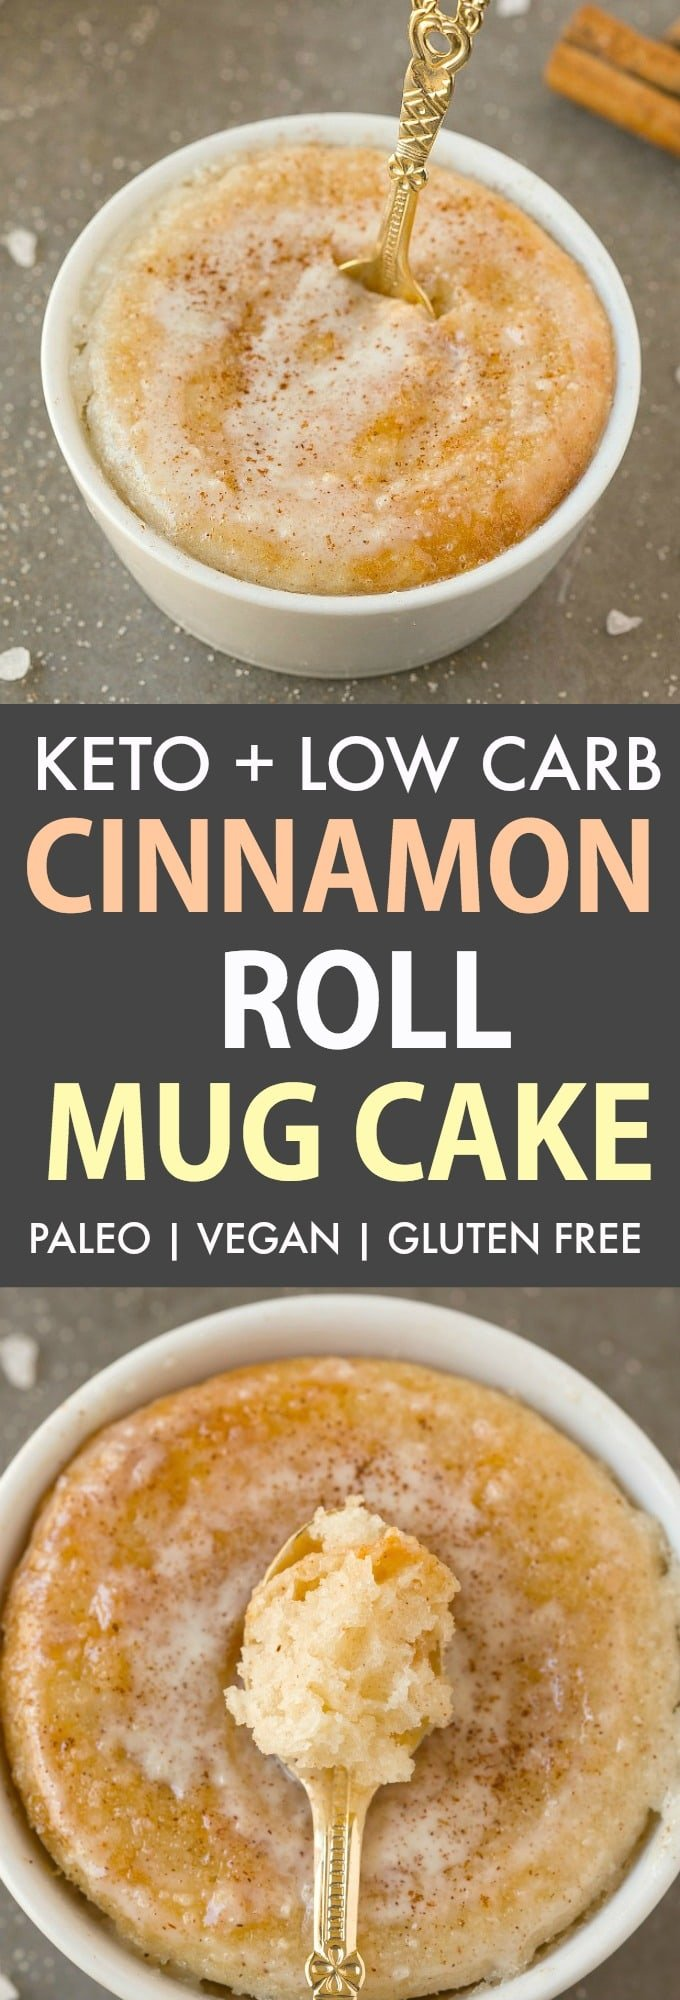 A keto cinnamon roll mug cake topped with a cinnamon glaze